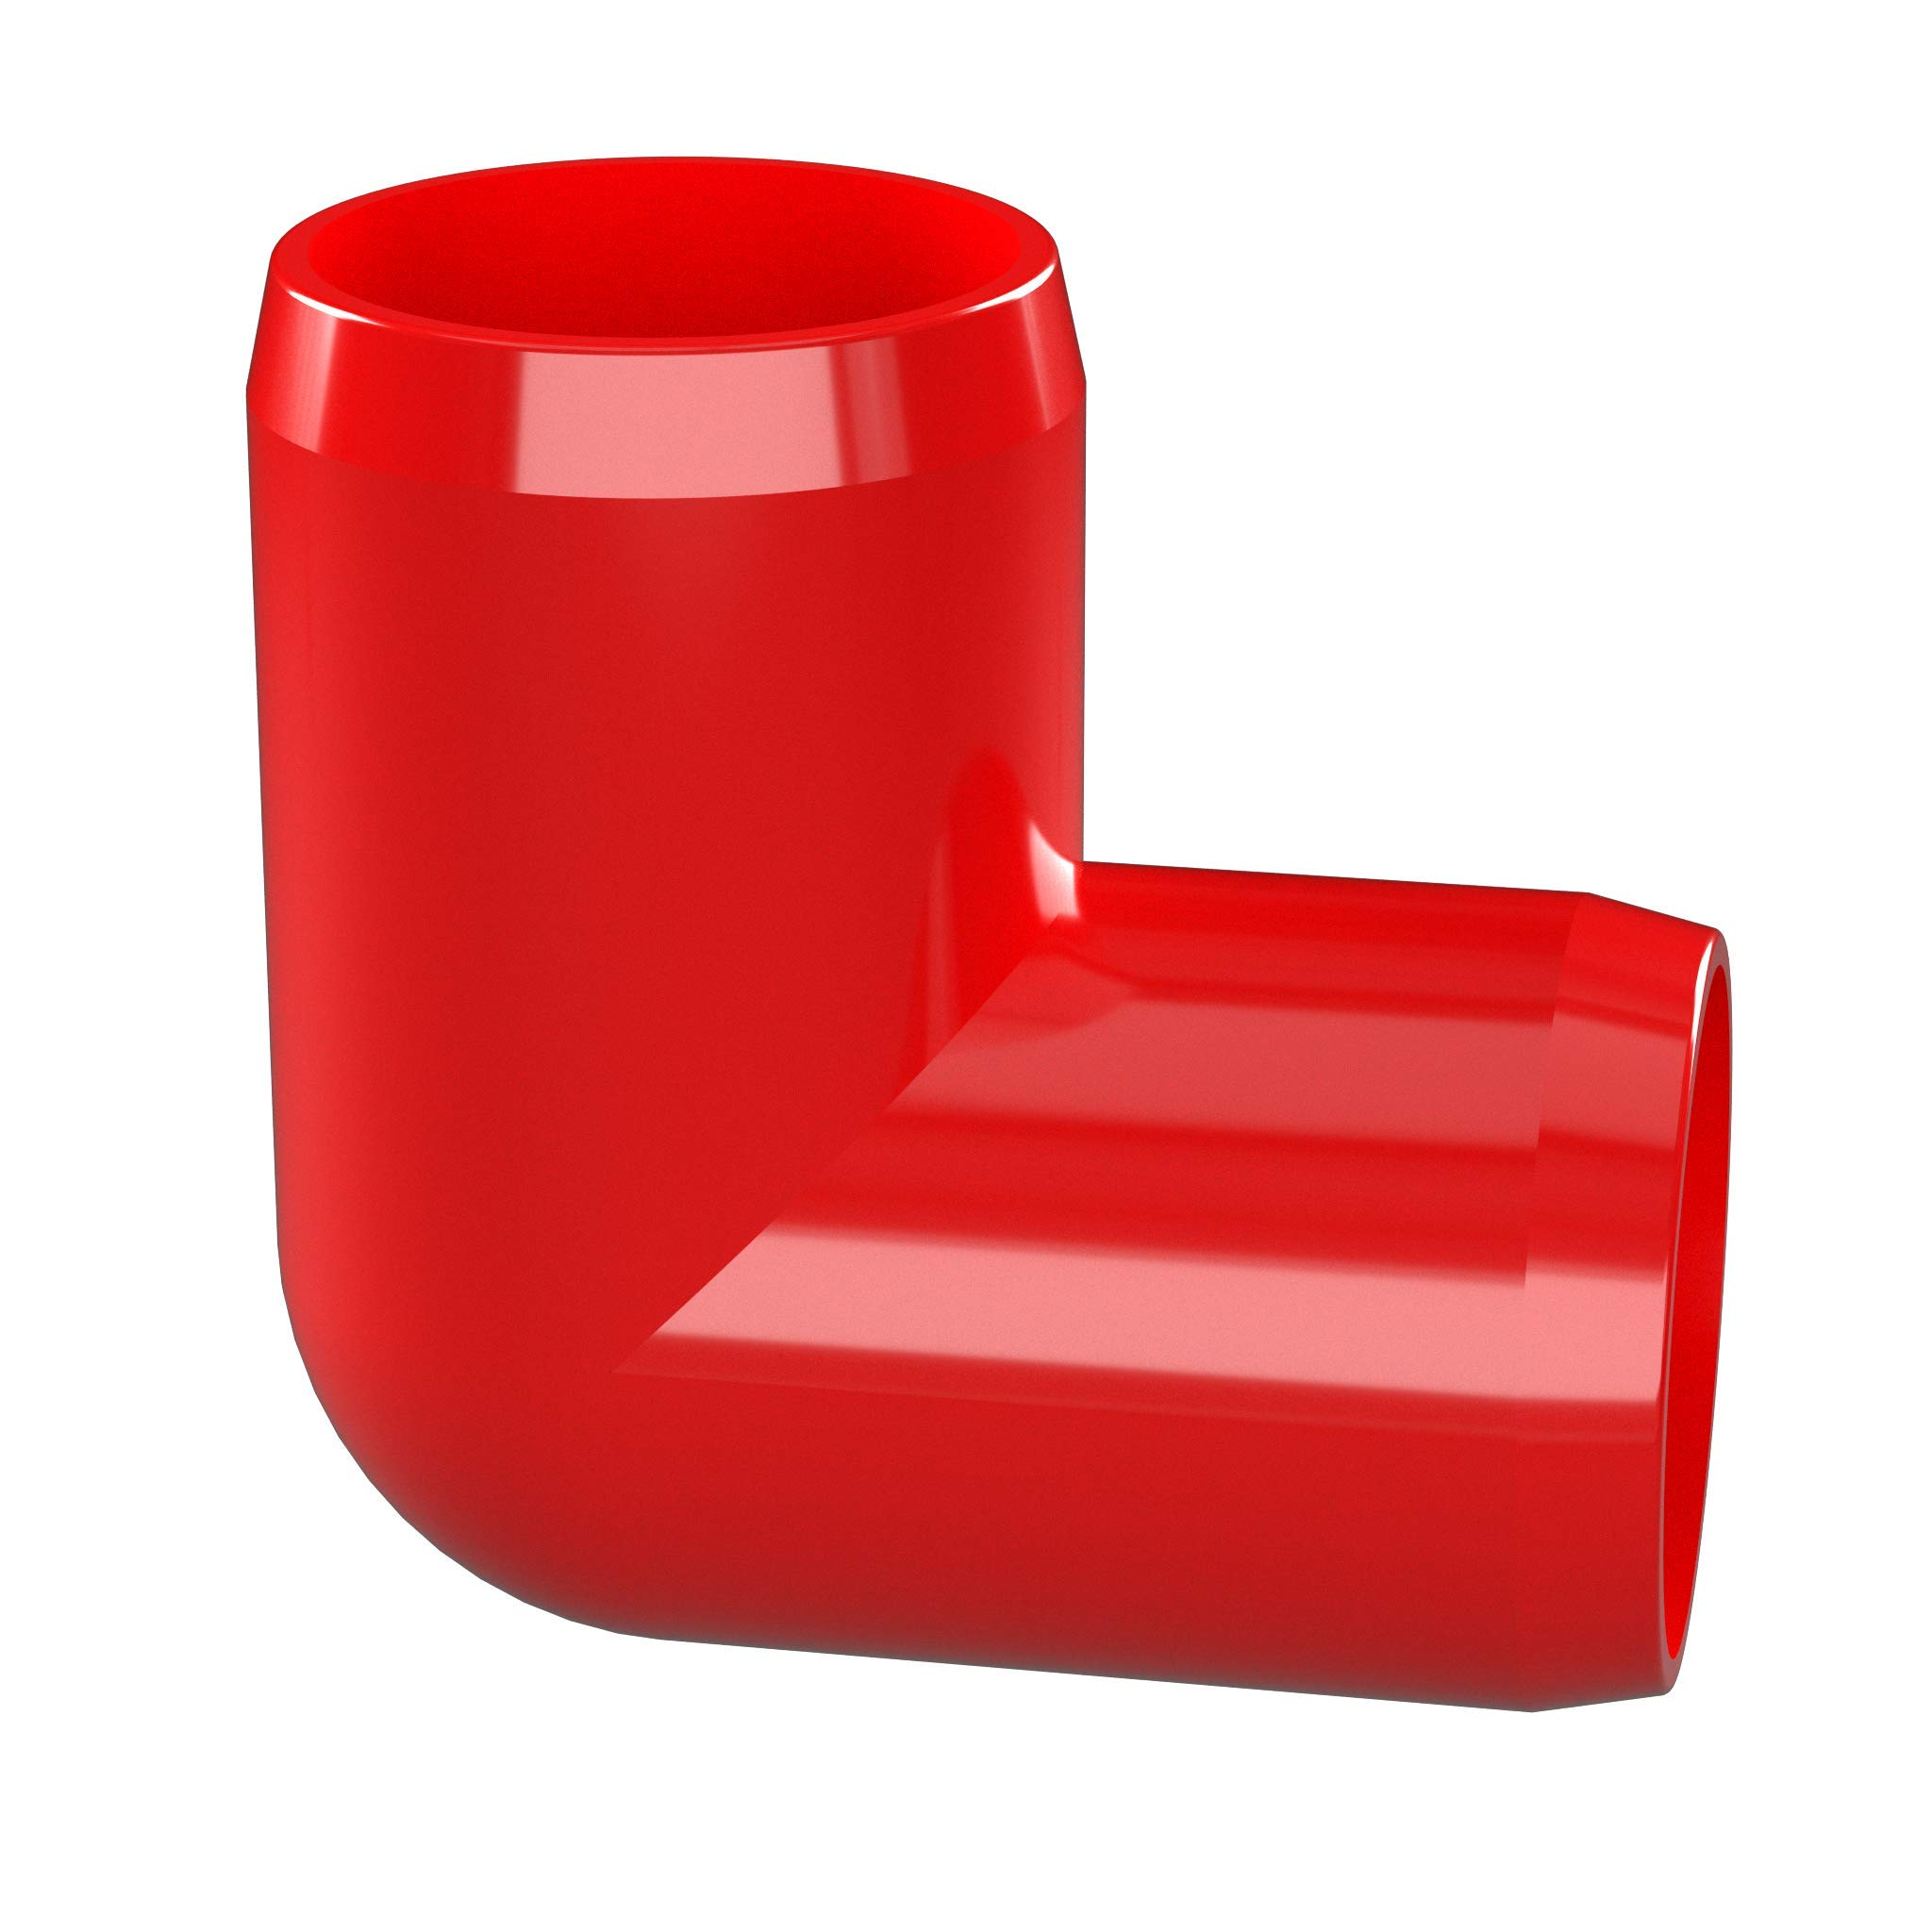 FORMUFIT F00190E-RD-4 90 degree Elbow PVC Fitting, Furniture Grade, 1'' Size, Red (Pack of 4) by FORMUFIT (Image #3)